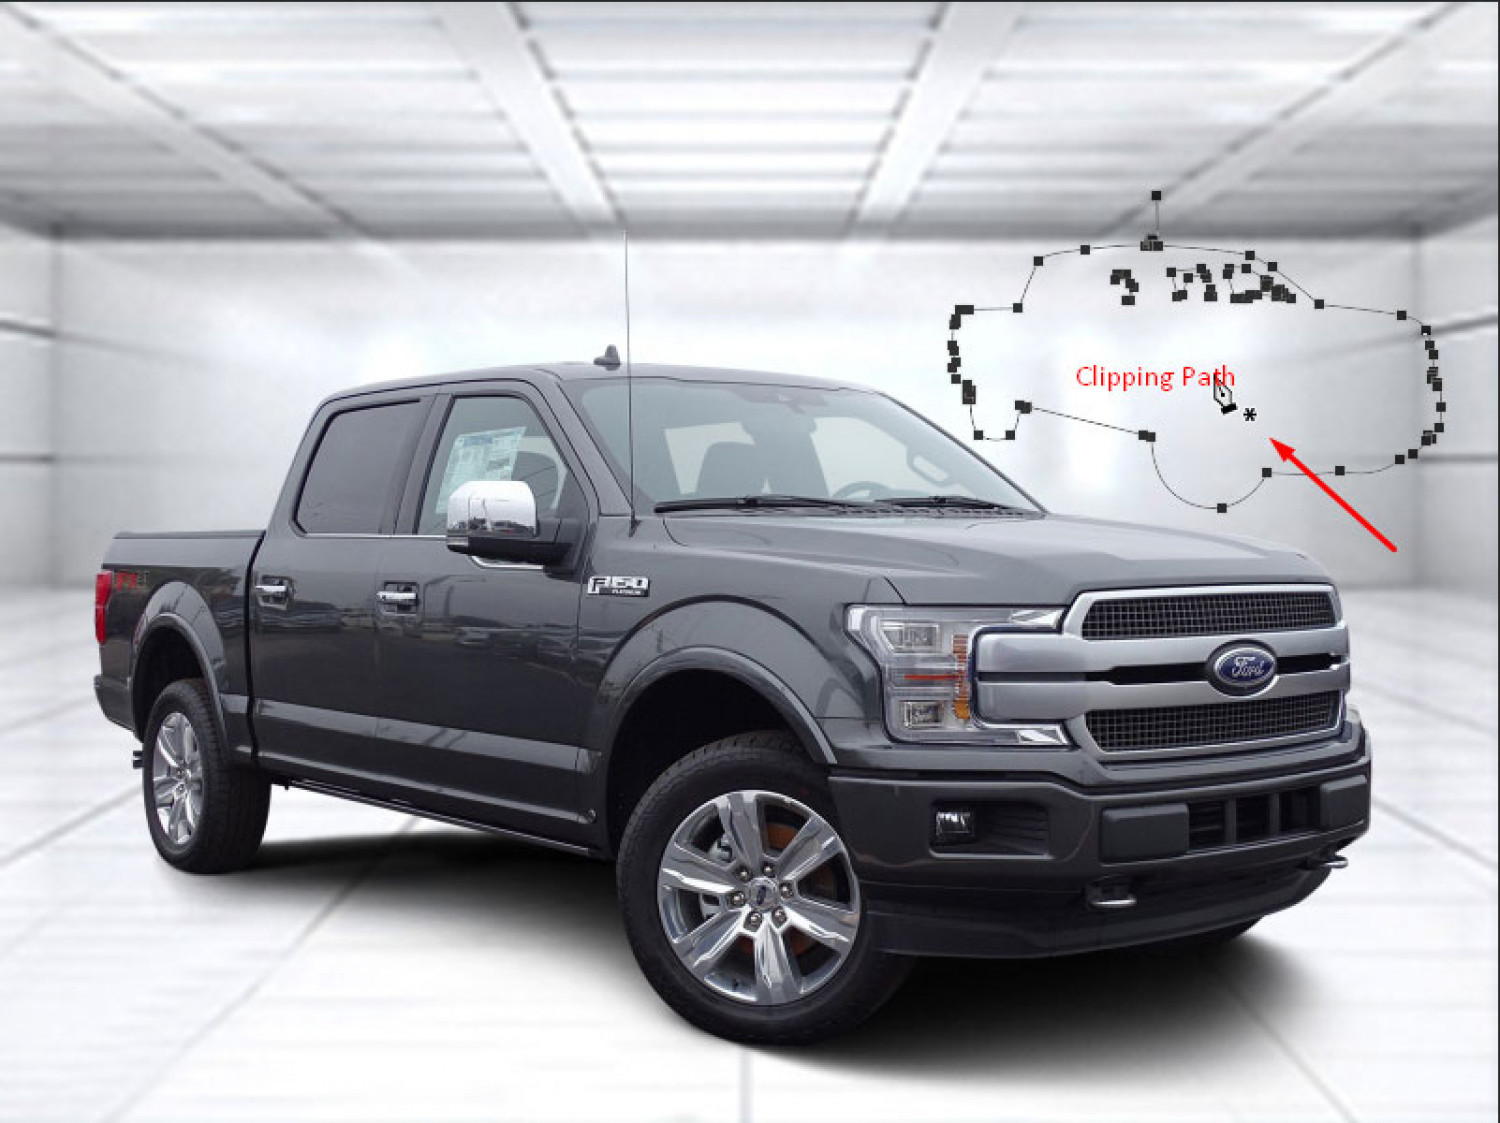 Car photo editing   Vehicles background removal Infographic